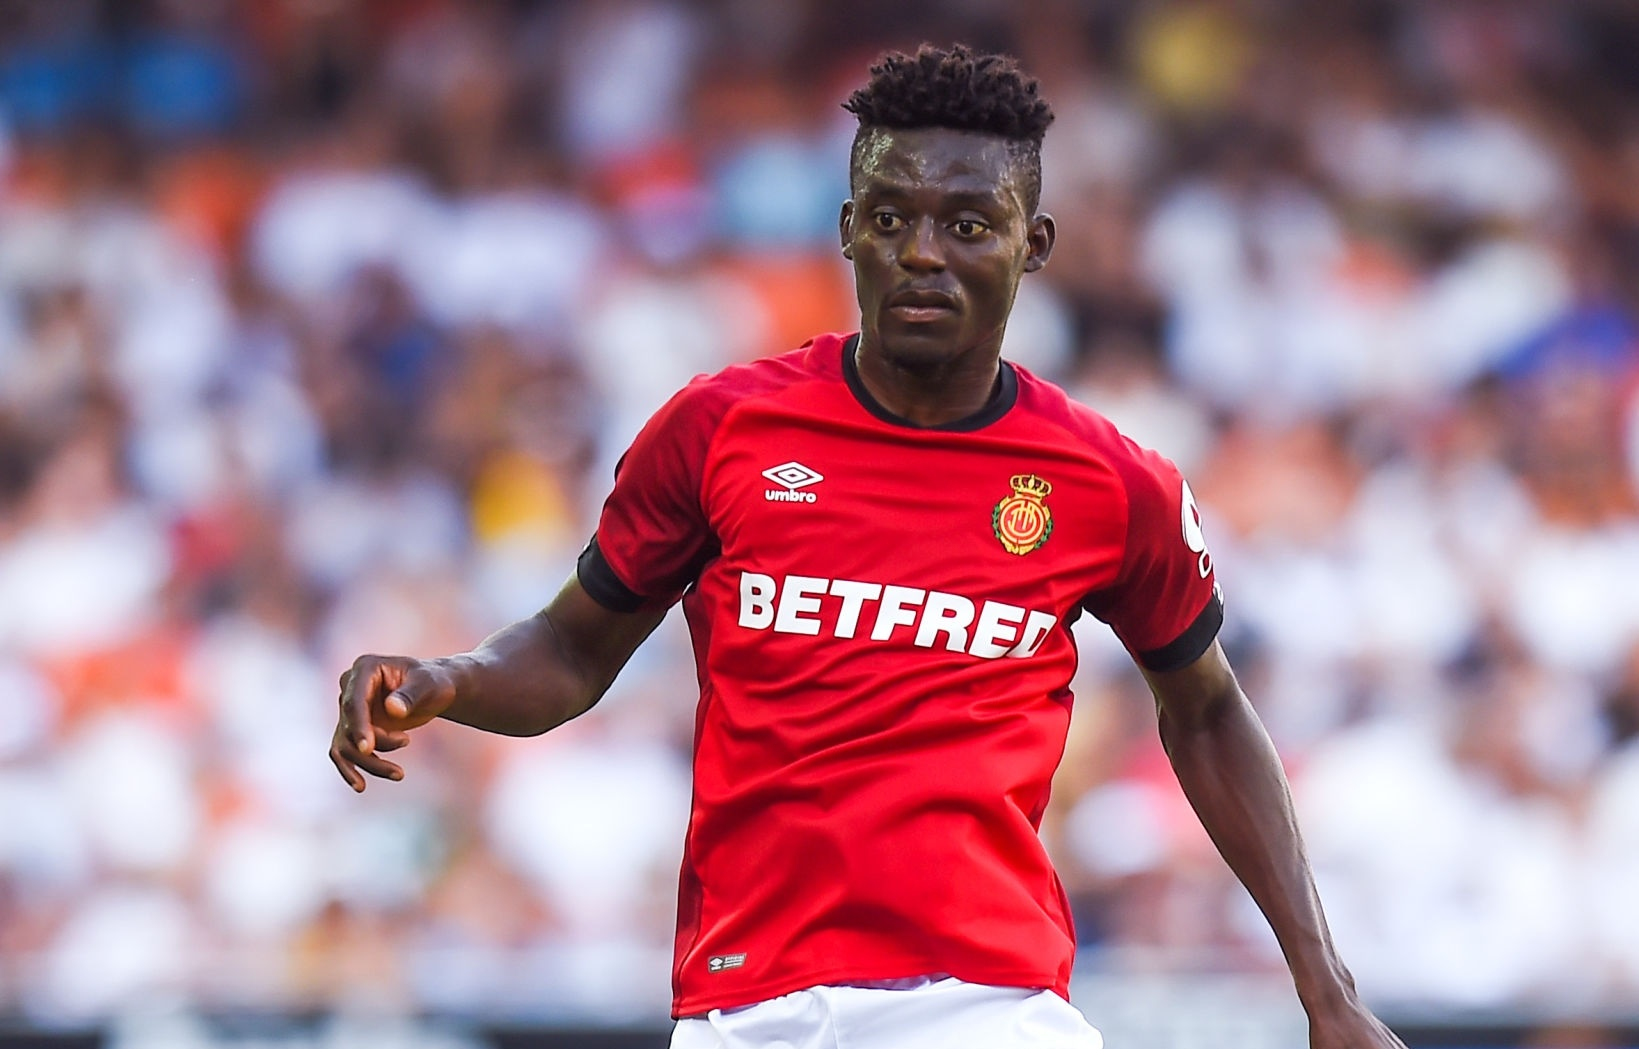 Mallorca : Iddrisu Baba targeted by Atletico Madrid - Africa Top Sports